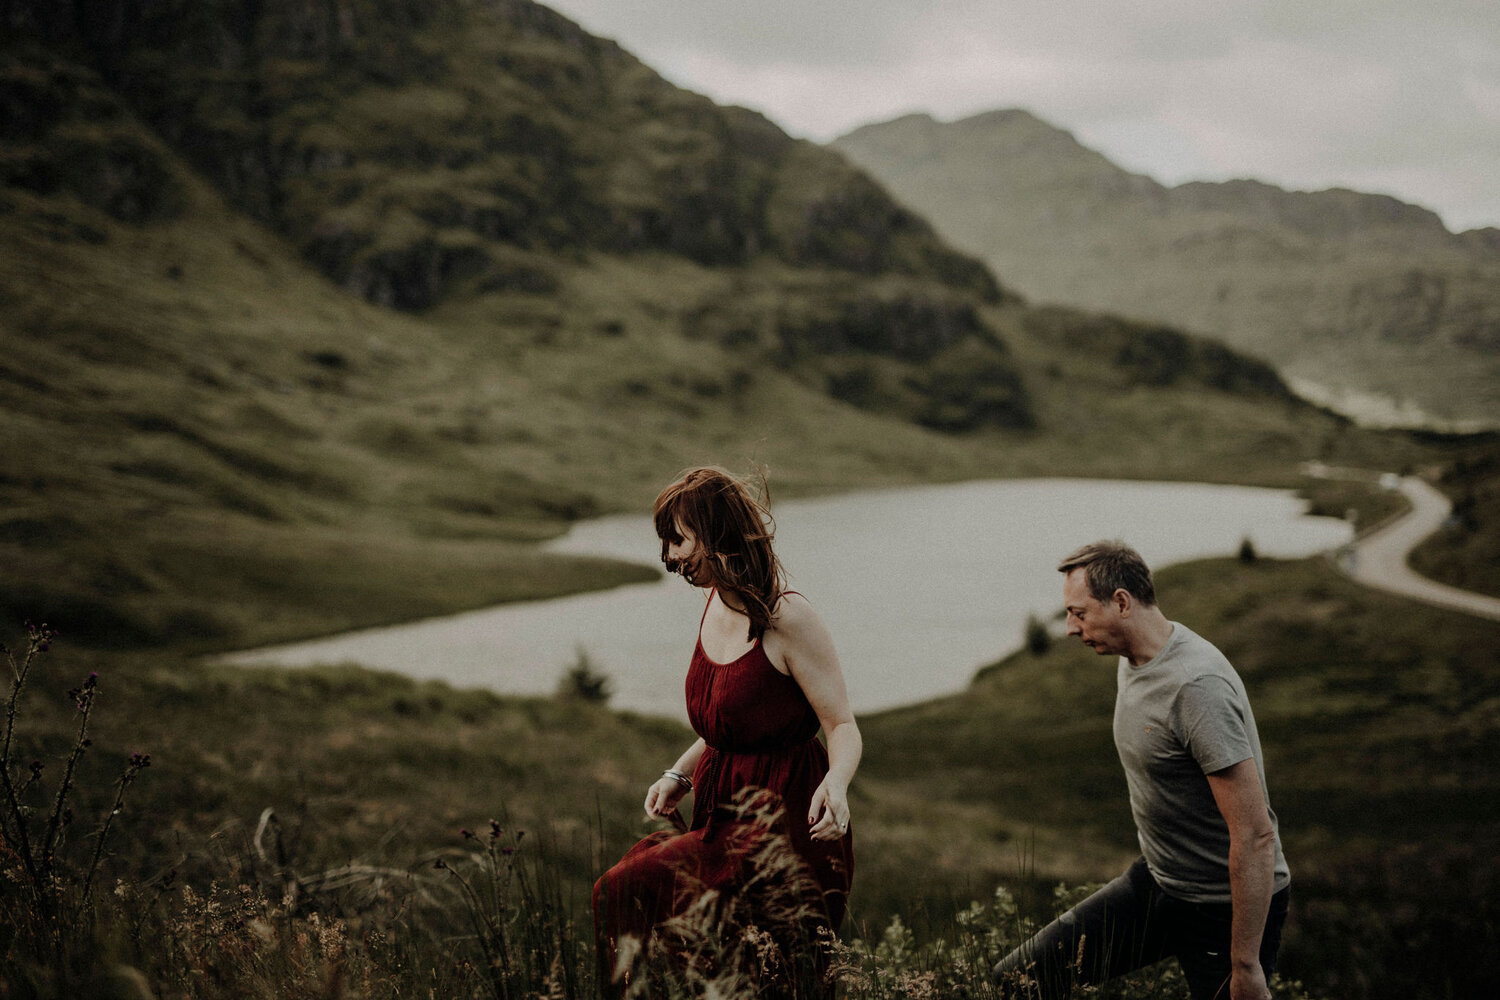 woman in dark red dress walking up the hill in mountains man follows her